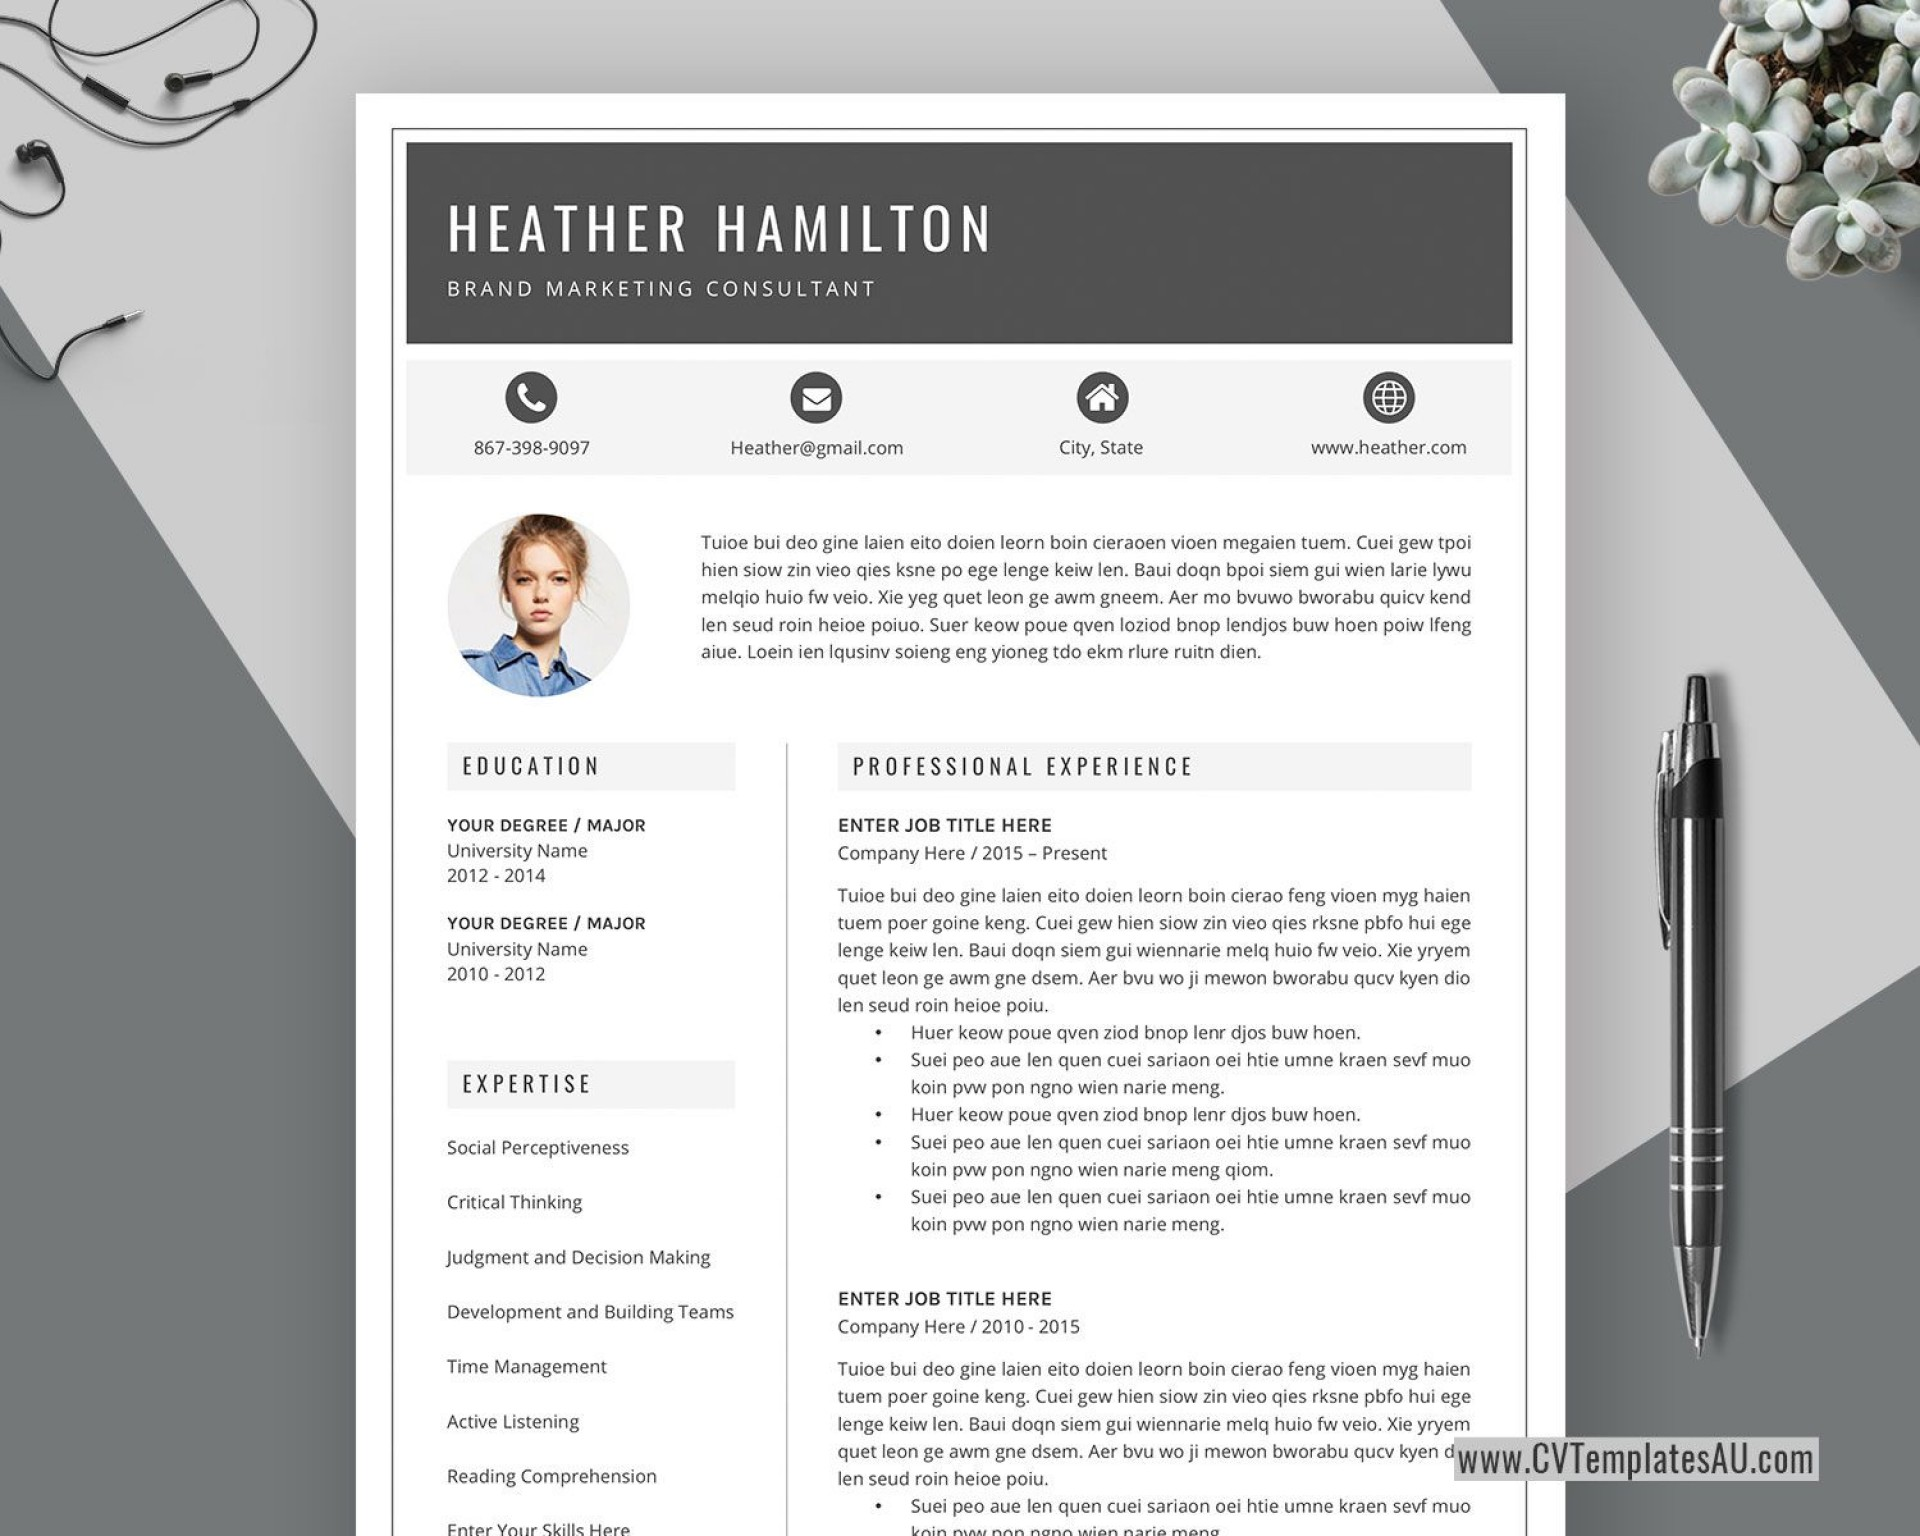 002 Singular Professional Resume Template Word Picture  Microsoft Download Free 2010 20191920